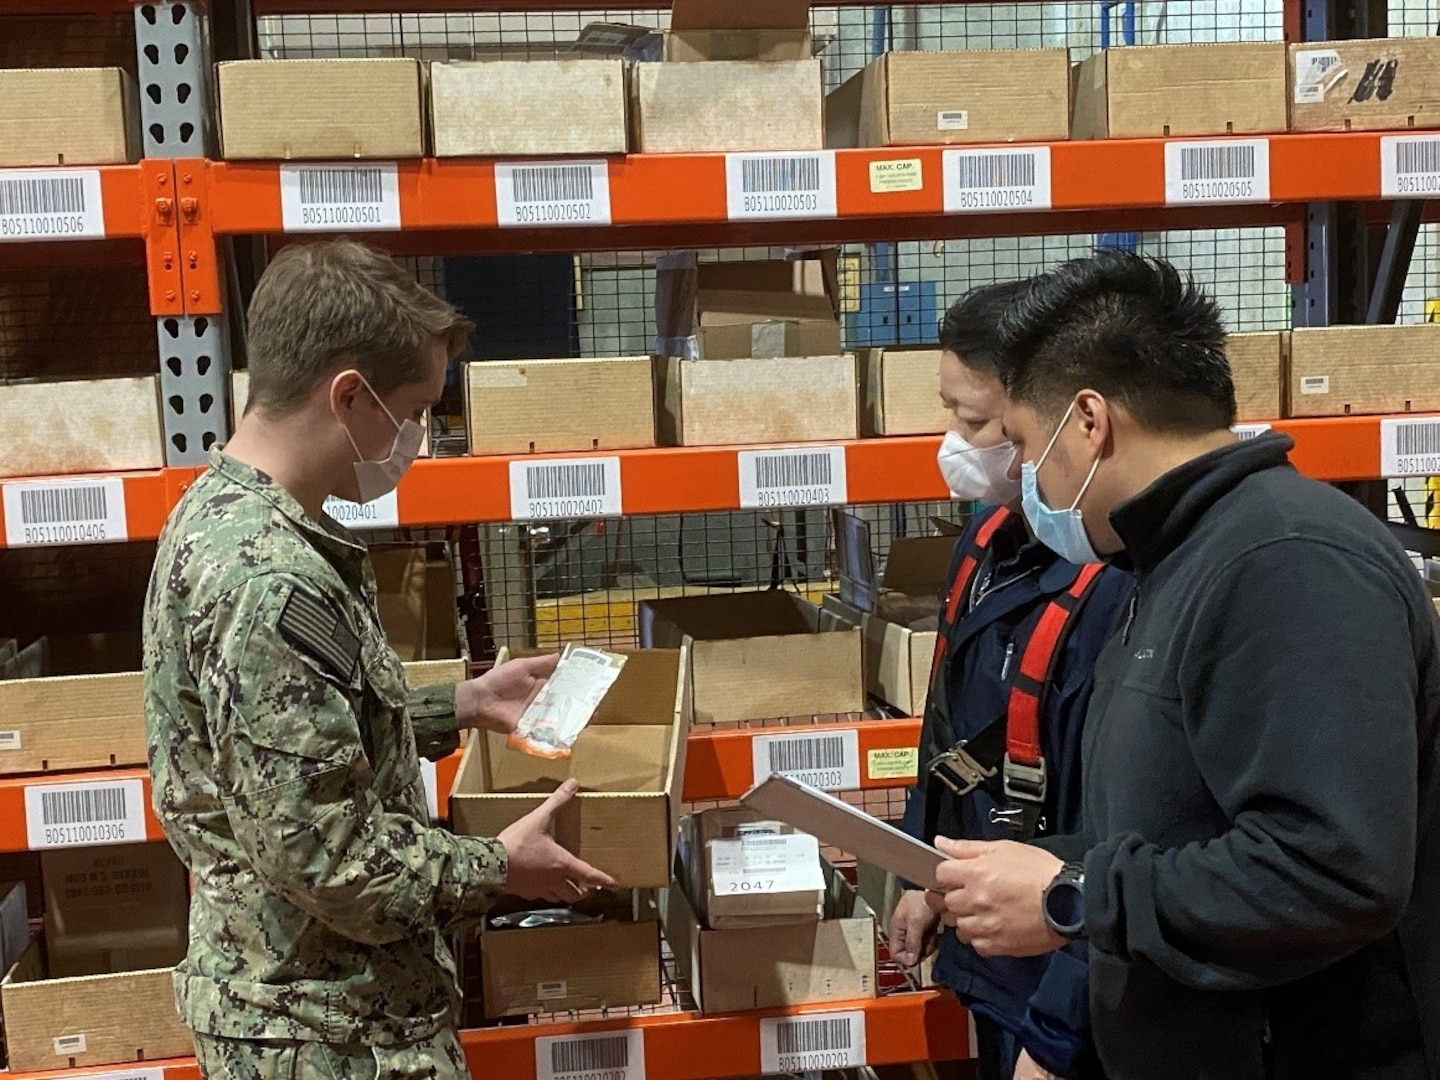 DLA Distribution supports troops, federal agencies while protecting employees during COVID-19